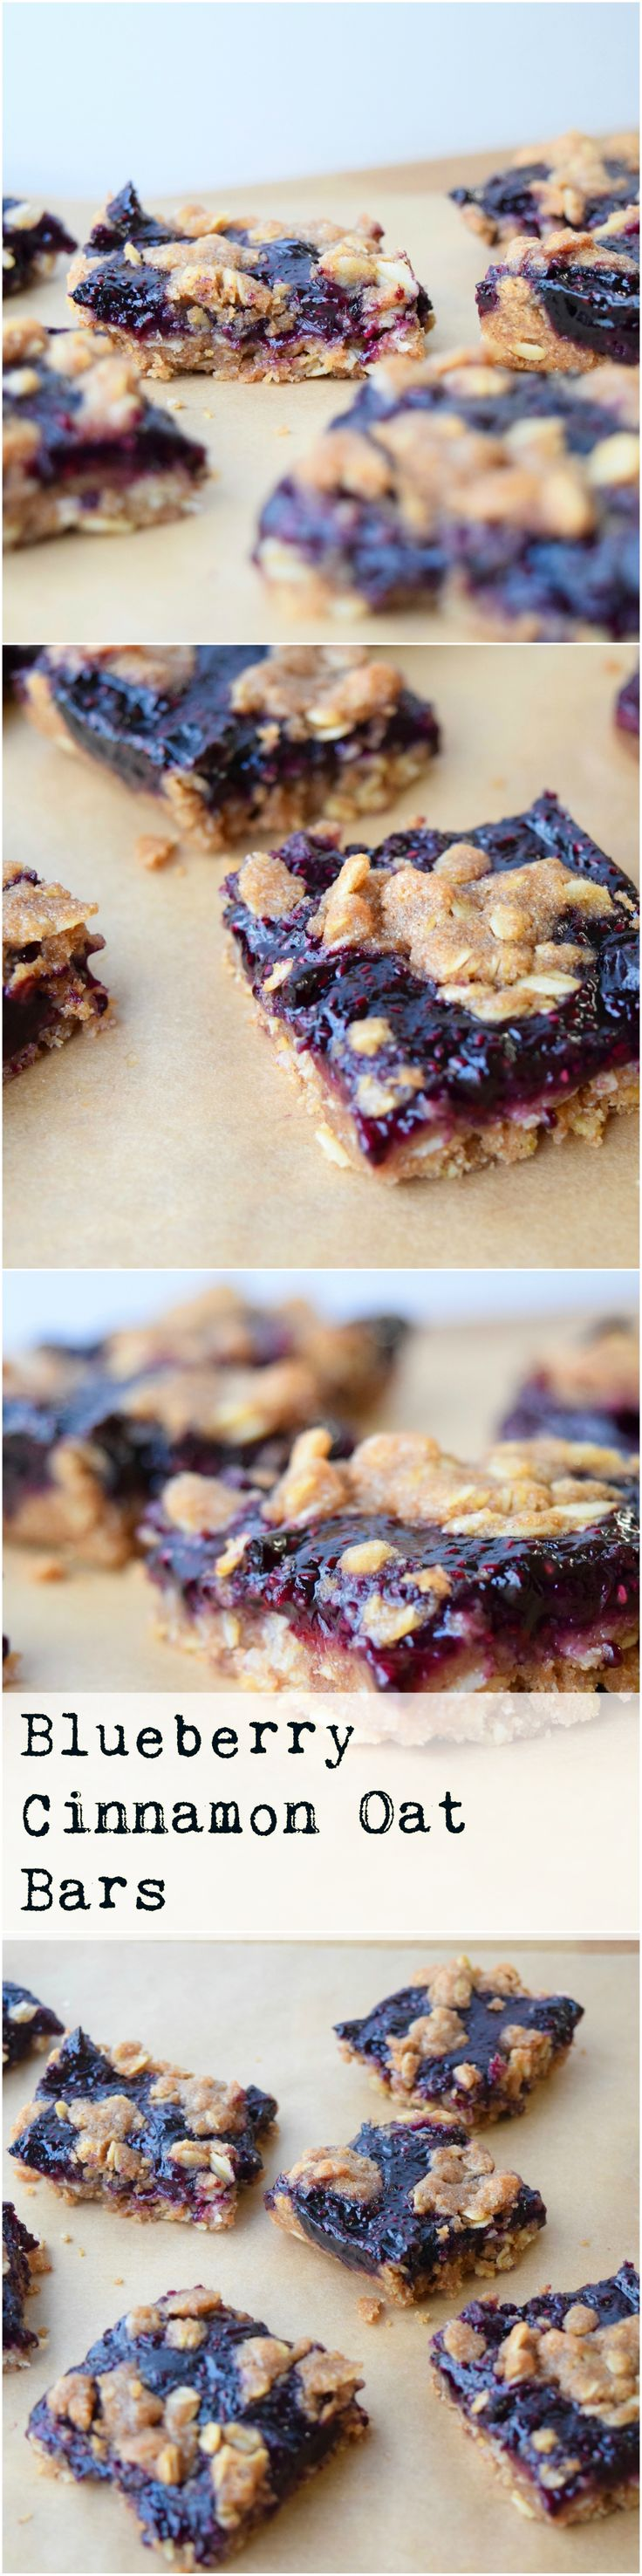 Our favorite vegan blueberry dessert! Serve as is for a snack or with ice cream :)